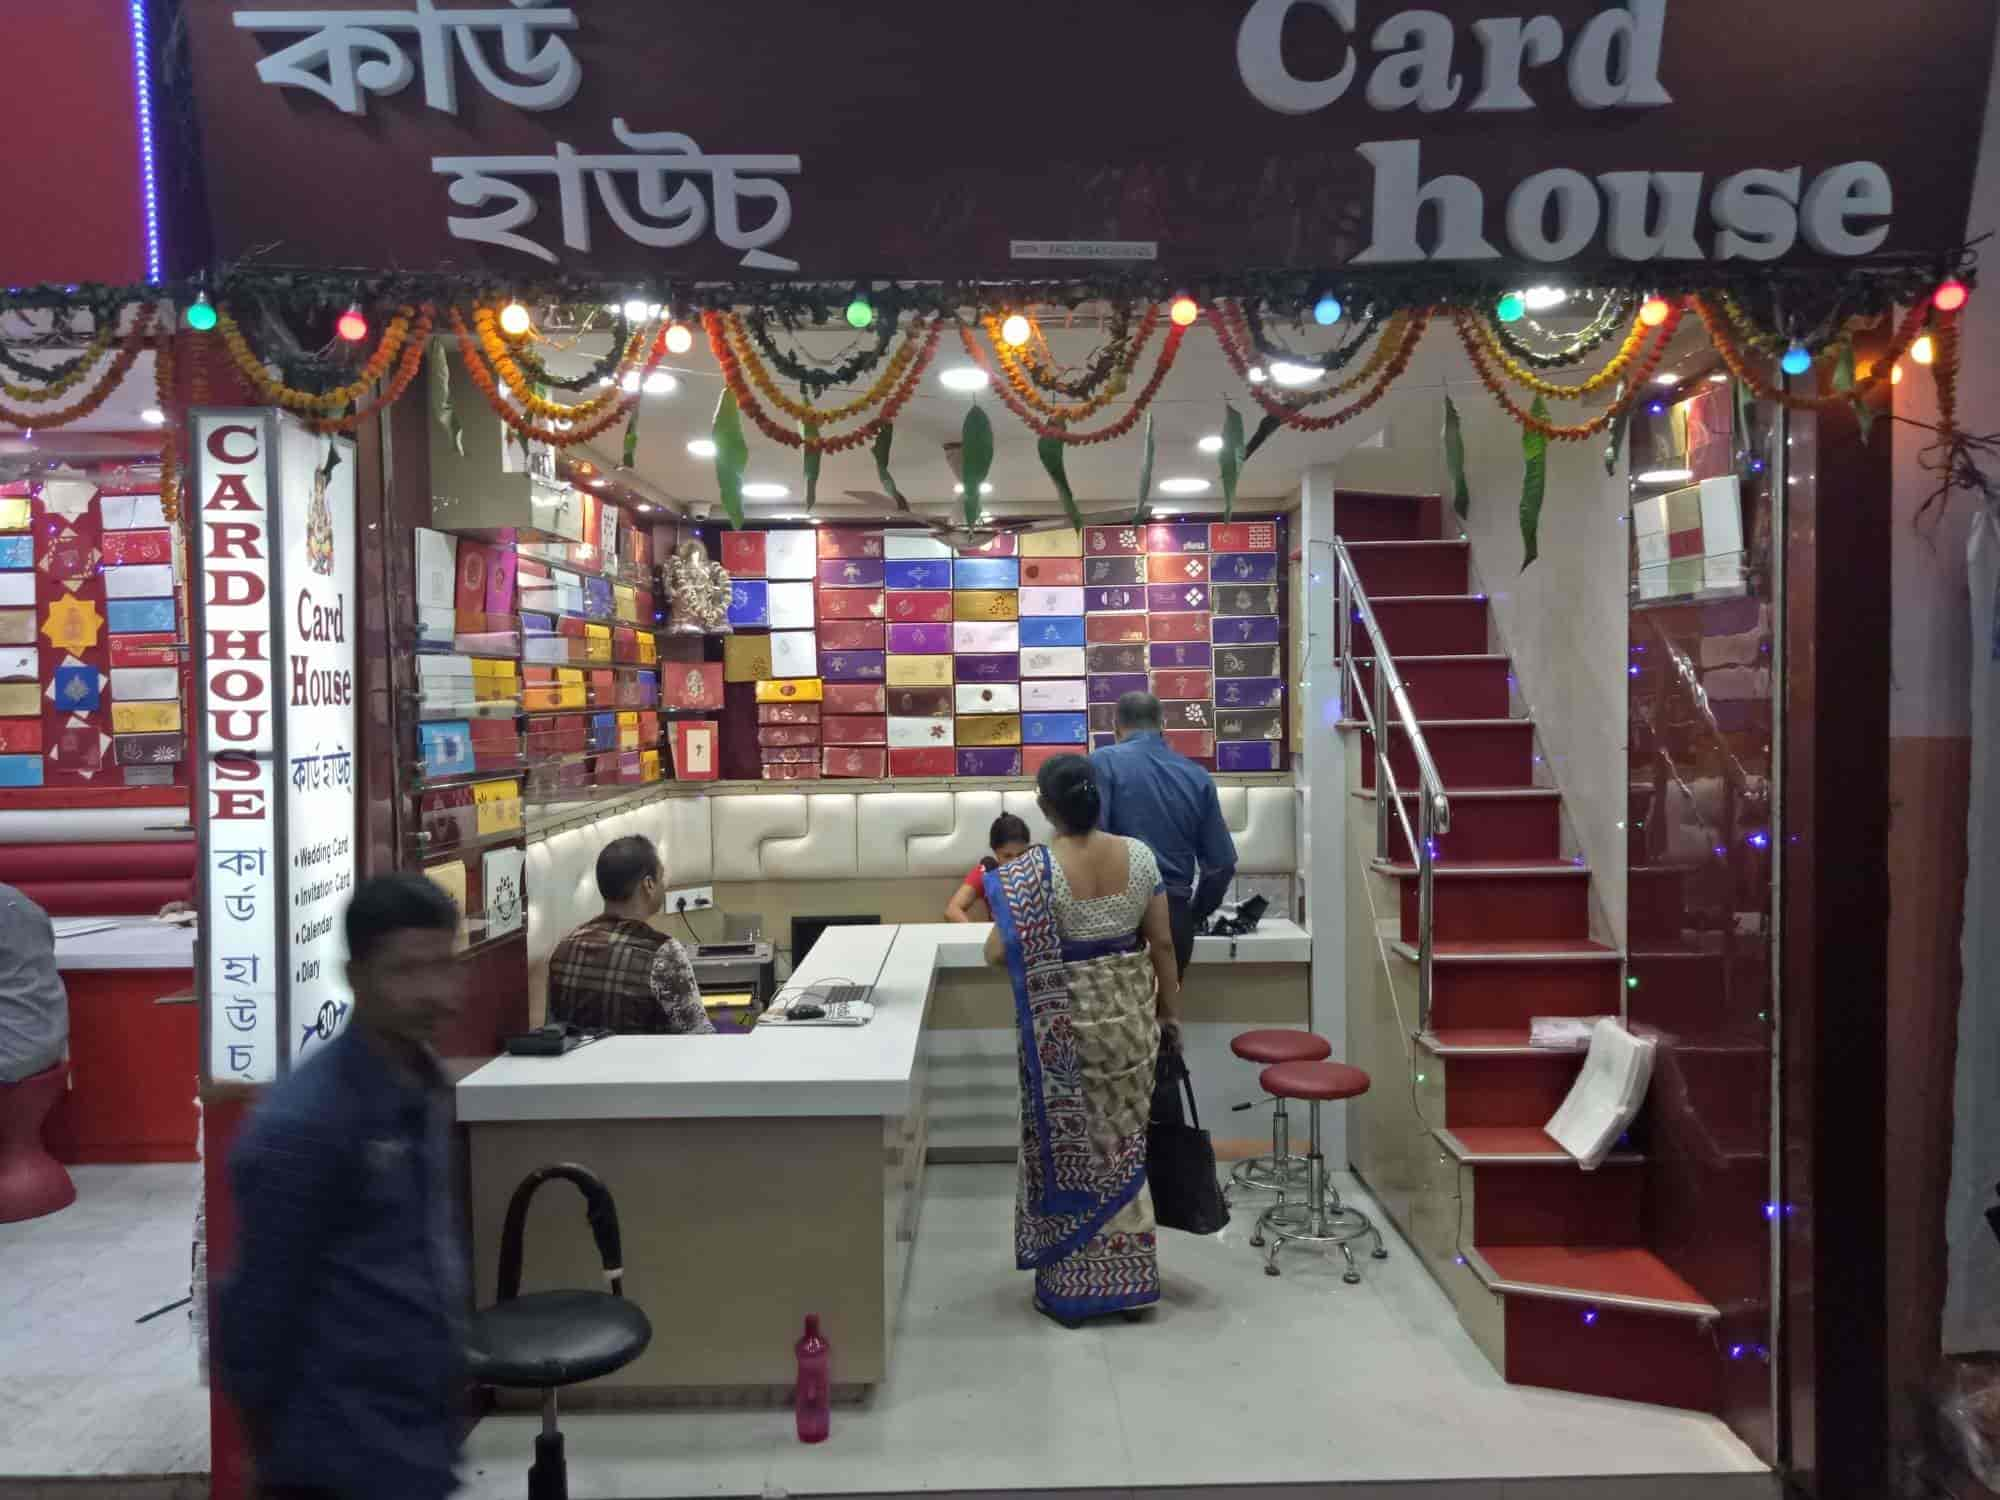 wedding cards in hyderabad general bazar%0A     Front view of Wedding Card Shop  Card House Photos  Fancy Bazar